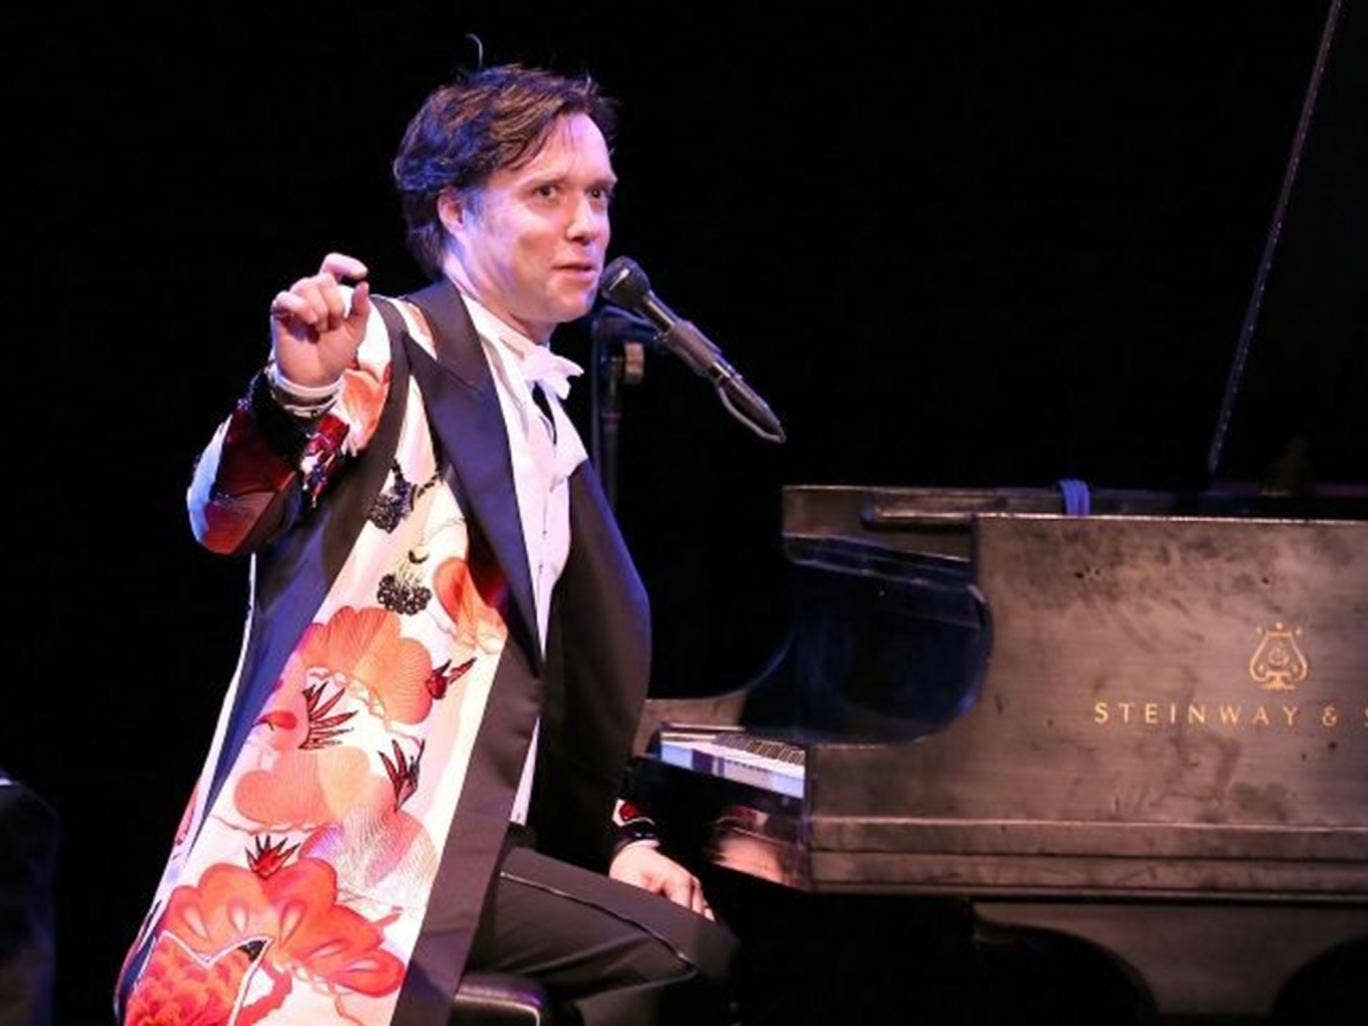 Rufus Wainwright performs at Town Hall on April 15, 2014 in New York City